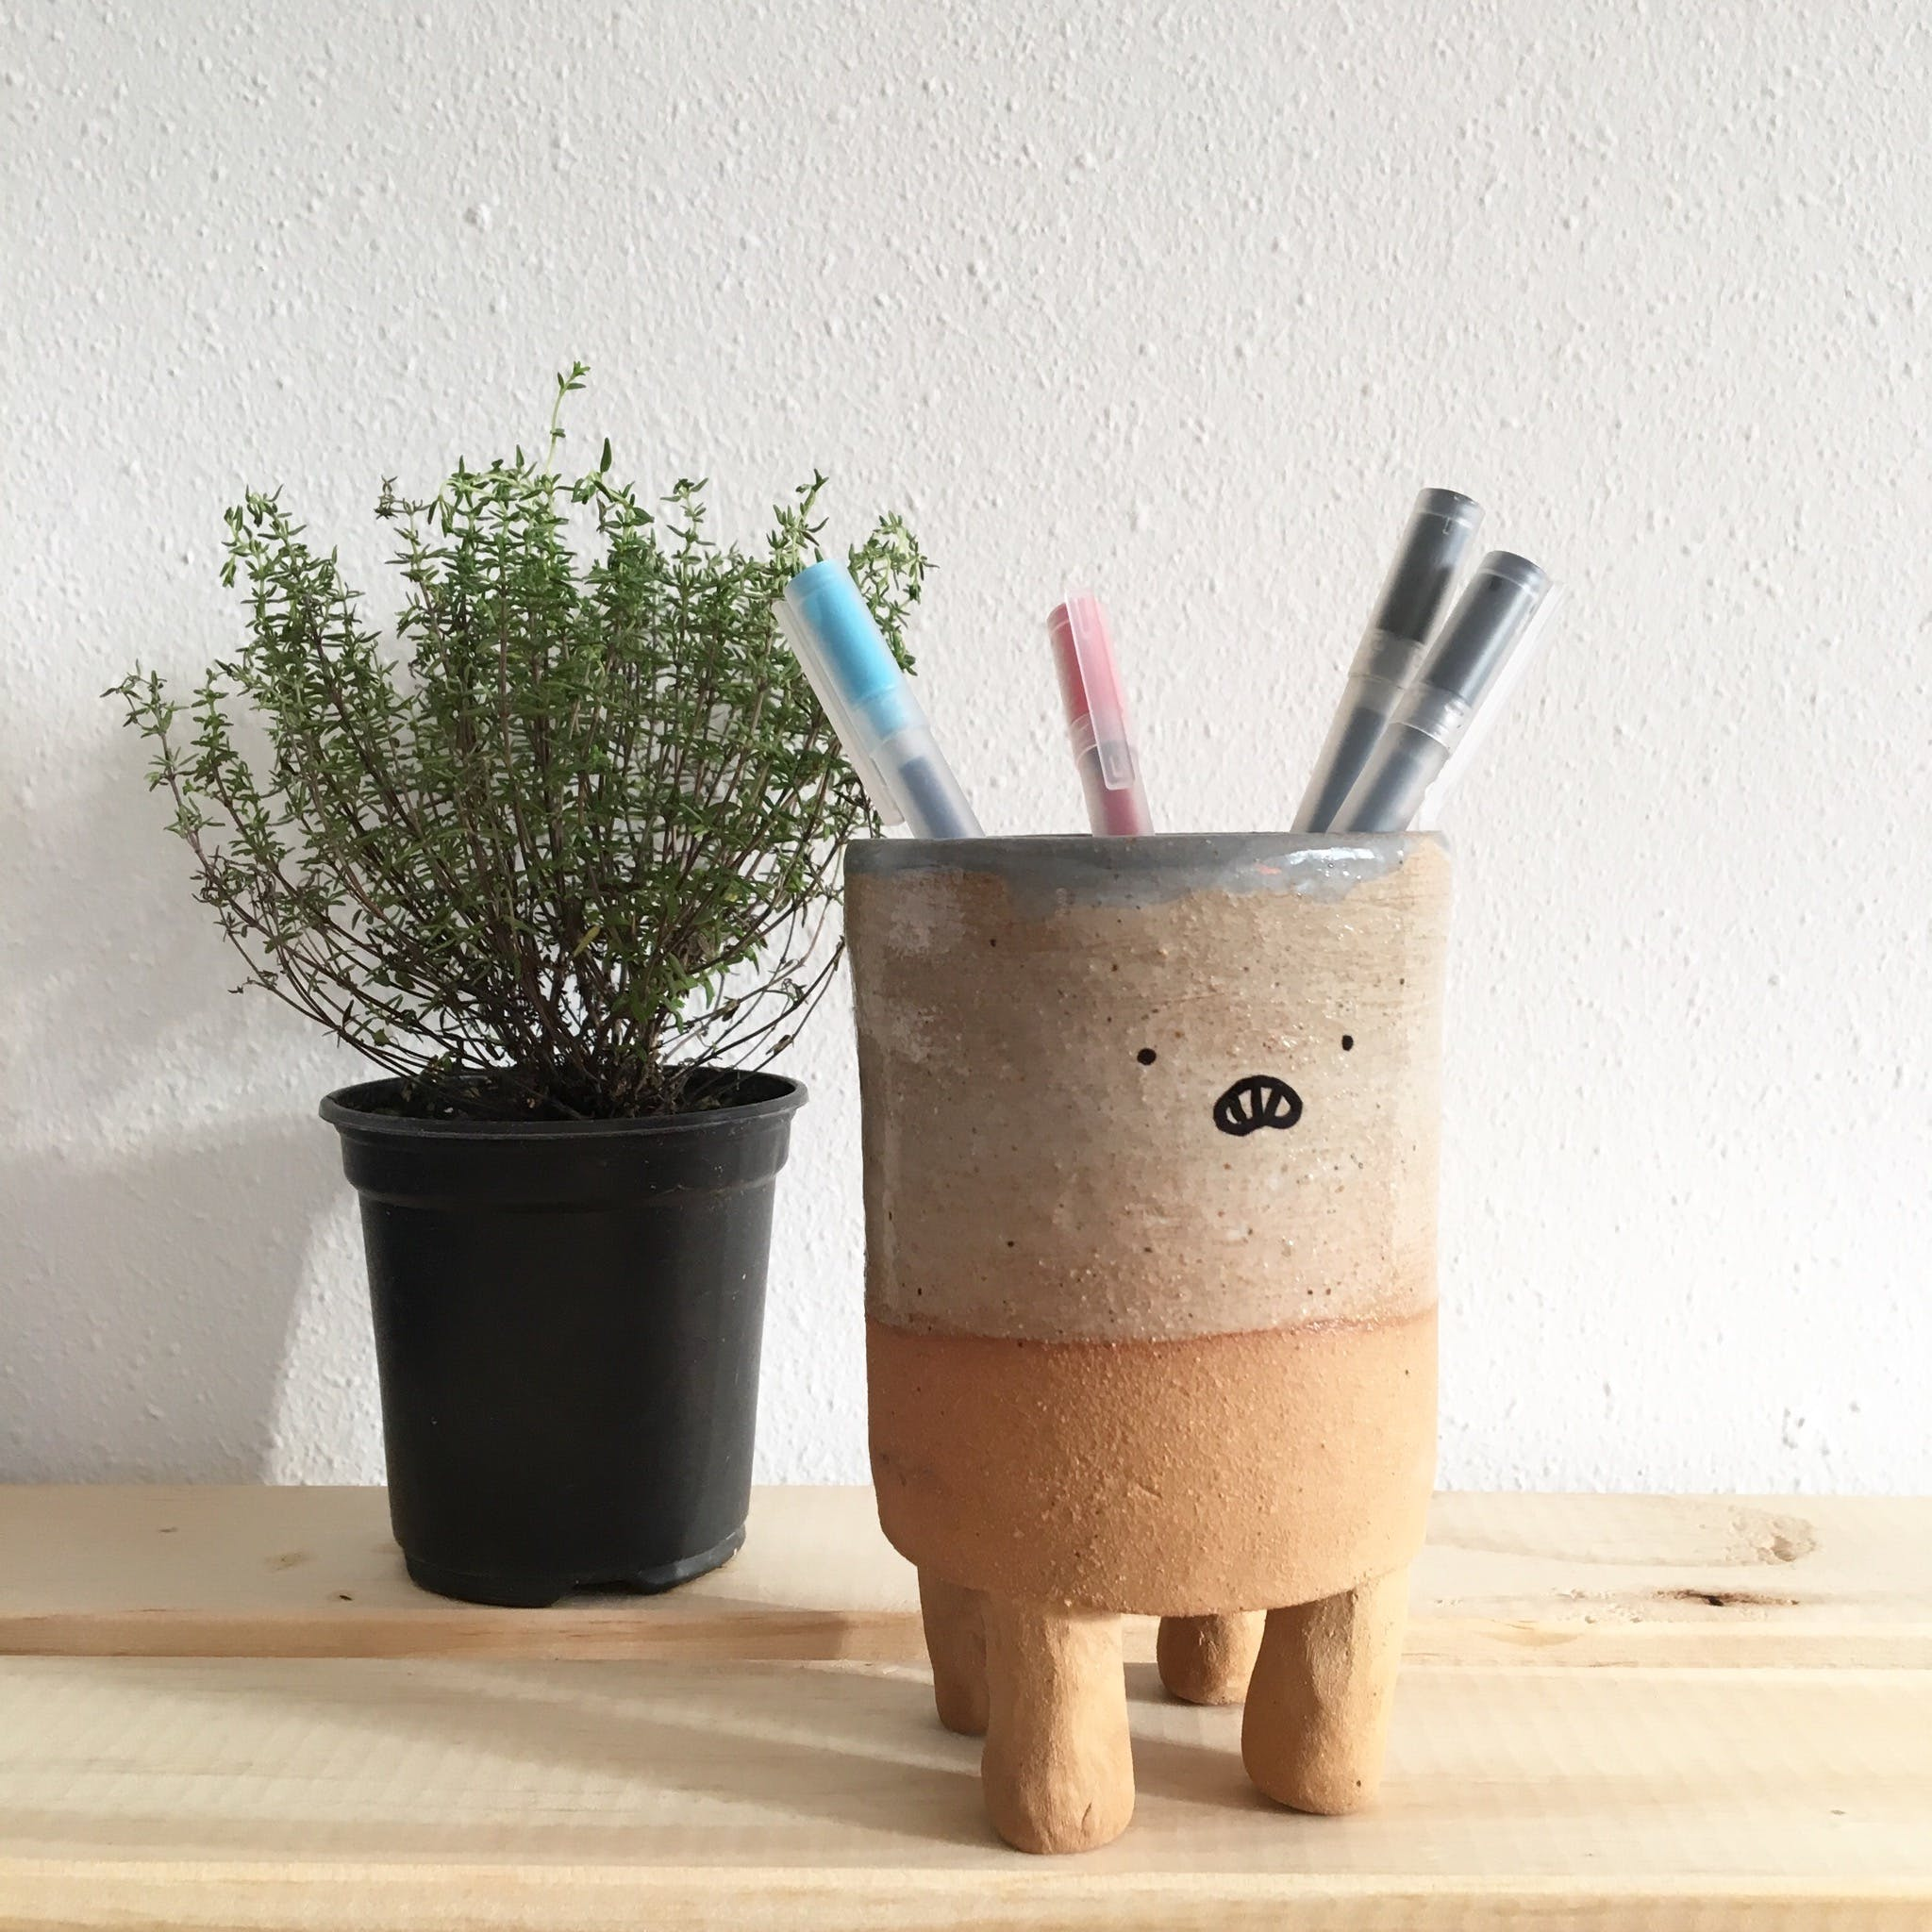 Free stock photo of plant, pot, potted plant, stationery